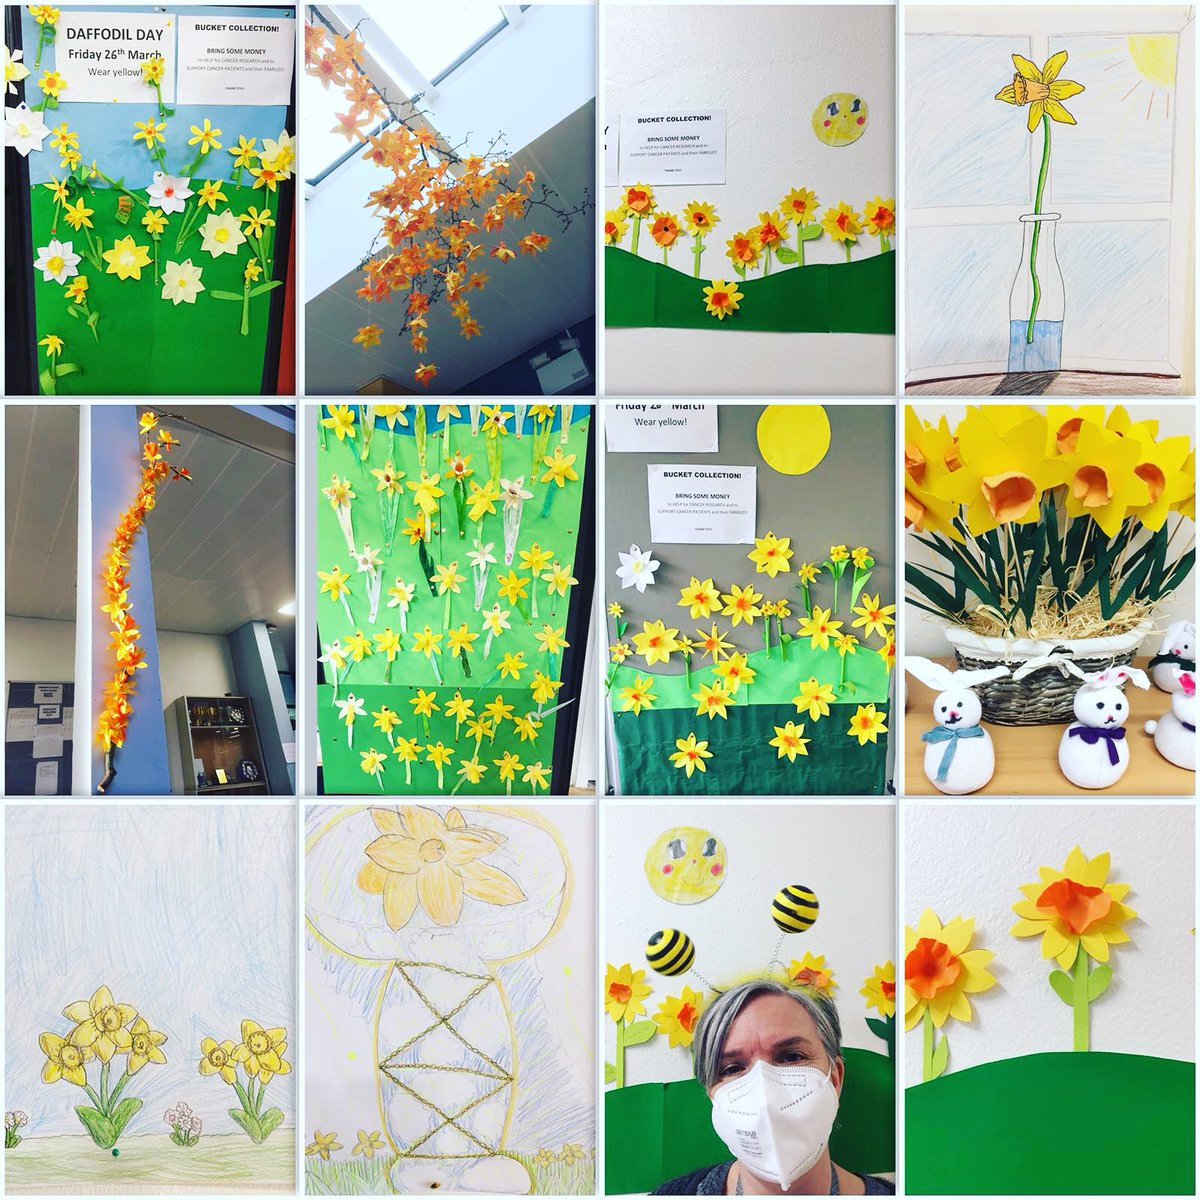 test Twitter Media - #daffodil art in our school. https://t.co/LYyetW6dOl